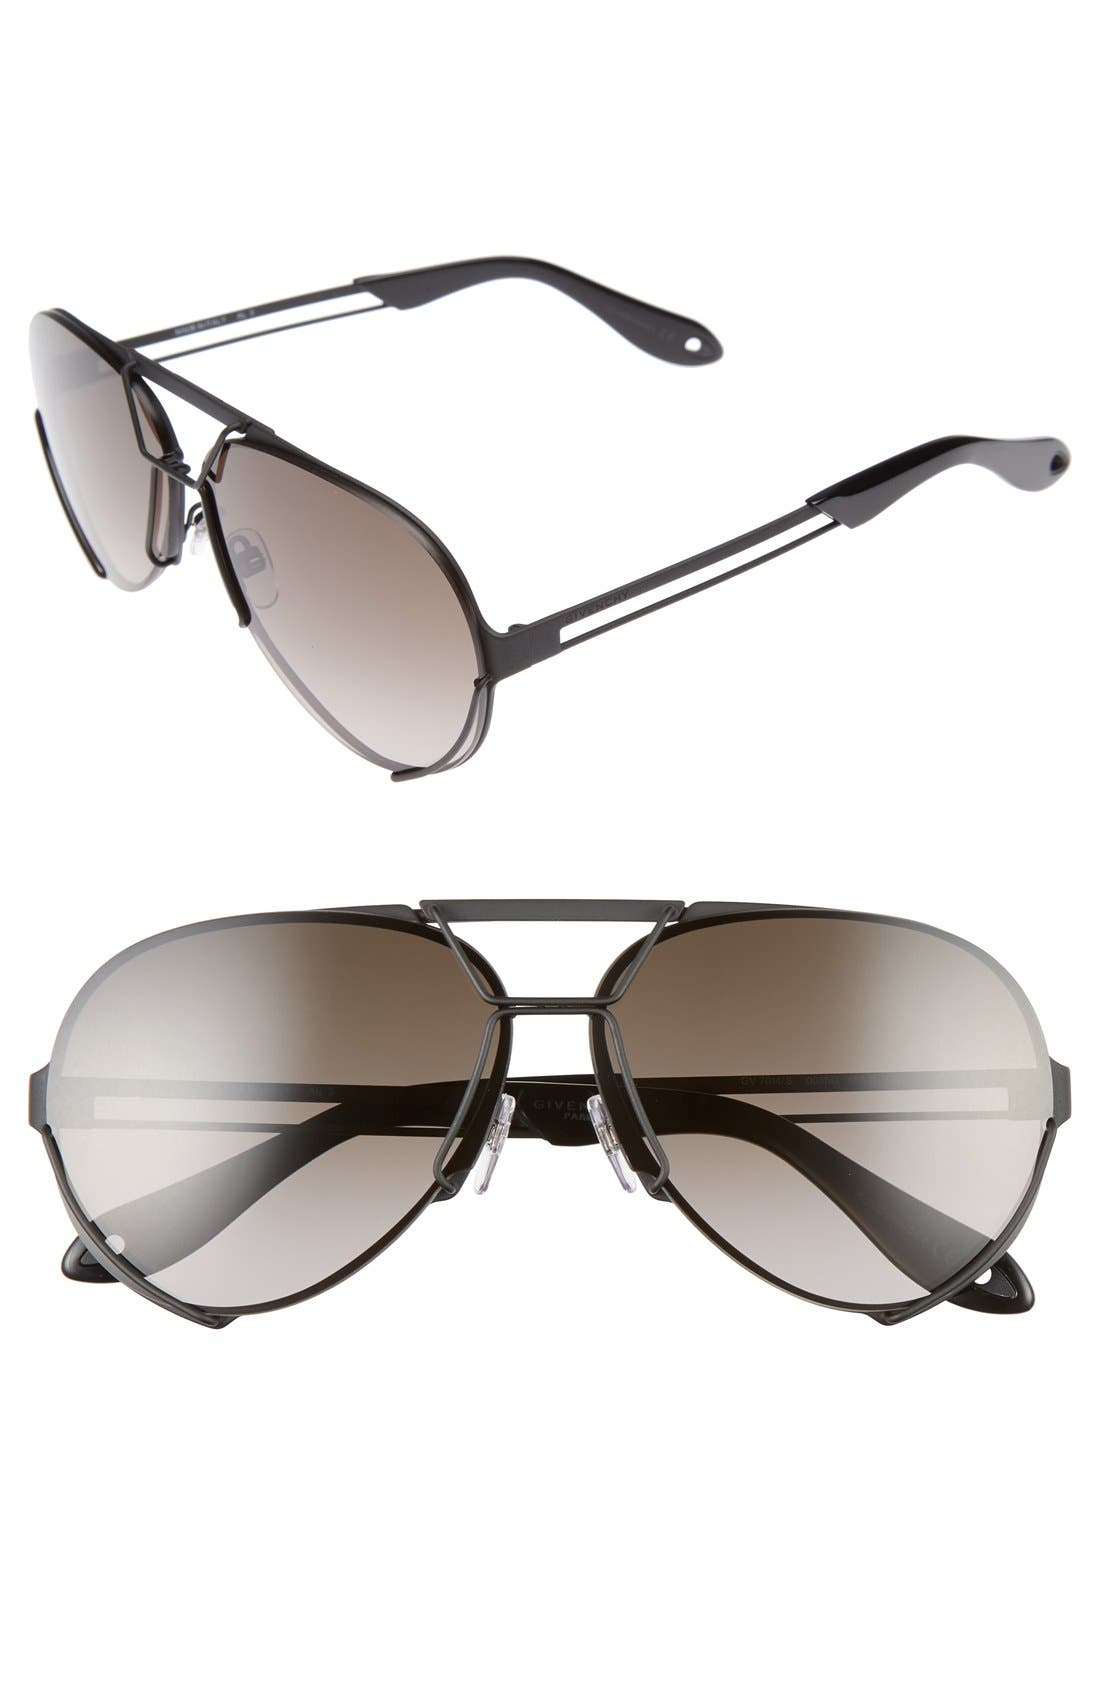 Main Image - Givenchy 65mm Aviator Sunglasses